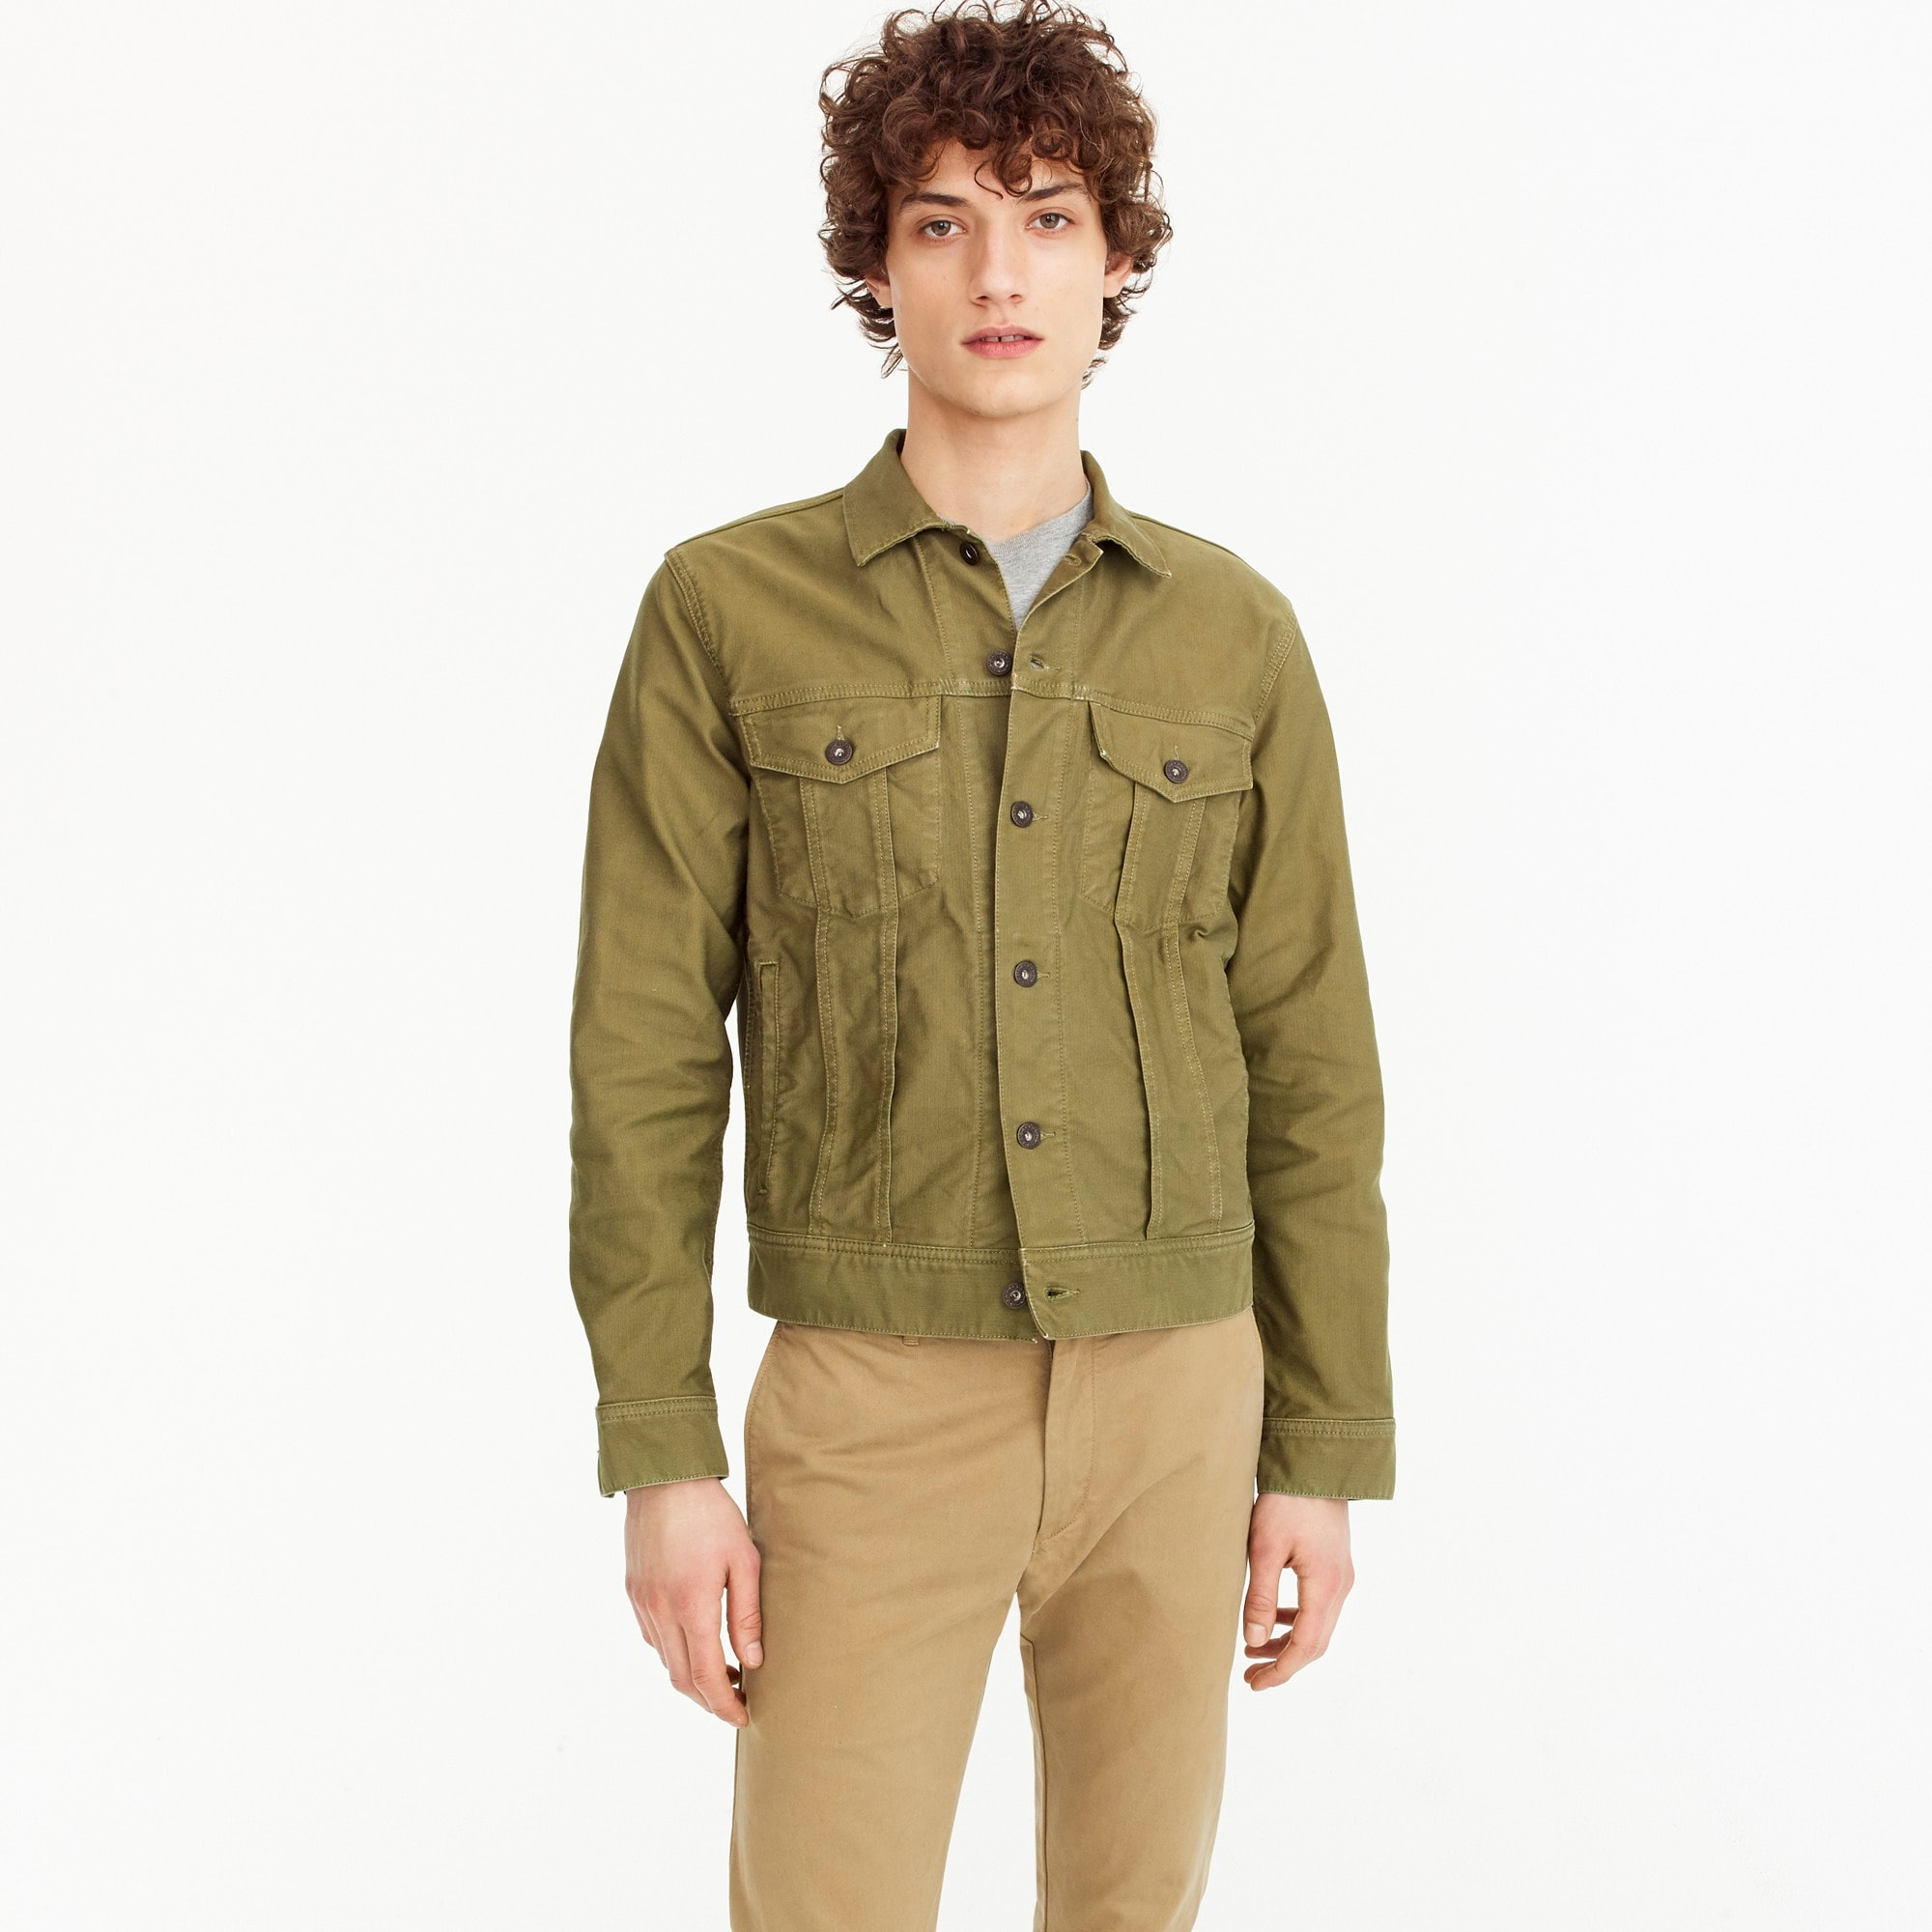 Trucker jacket in garment-dyed Bedford cord men new arrivals c